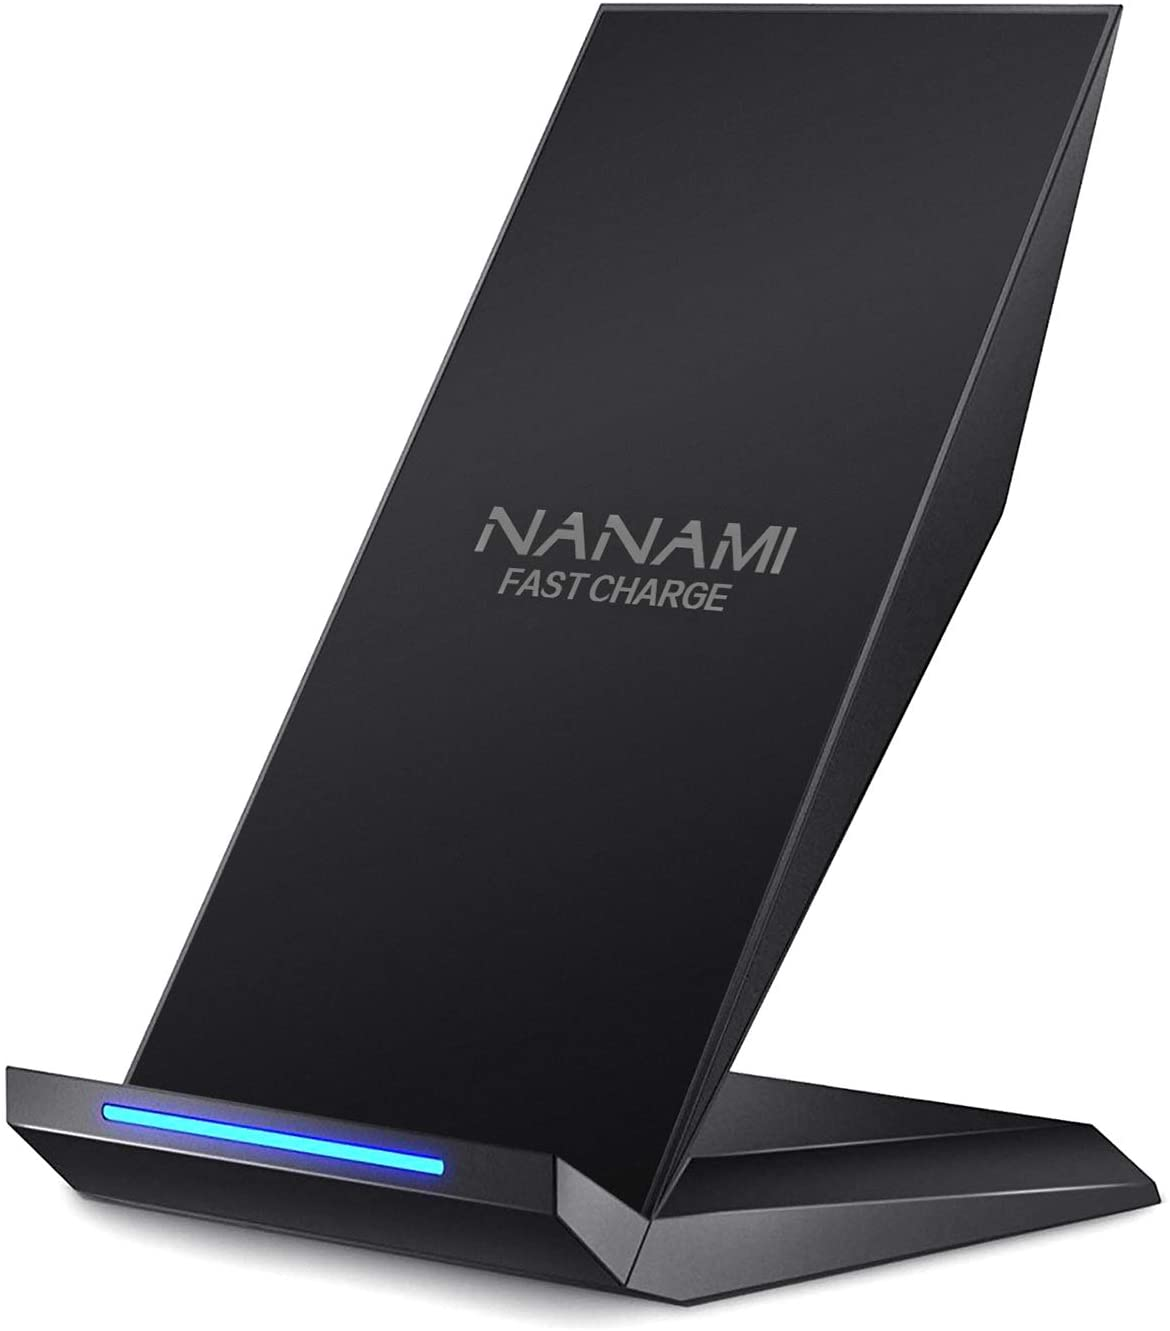 Fast Wireless Charger,NANAMI Qi Certified Wireless Charging Stand Compatible iPhone SE/11/11 Pro/11 Pro Max/XS/XS Max/XR/X/8 Plus,Samsung Galaxy S20 S10 S9 S8 S7 Edge Note 10+/9/8 and Qi-Enabled Phone